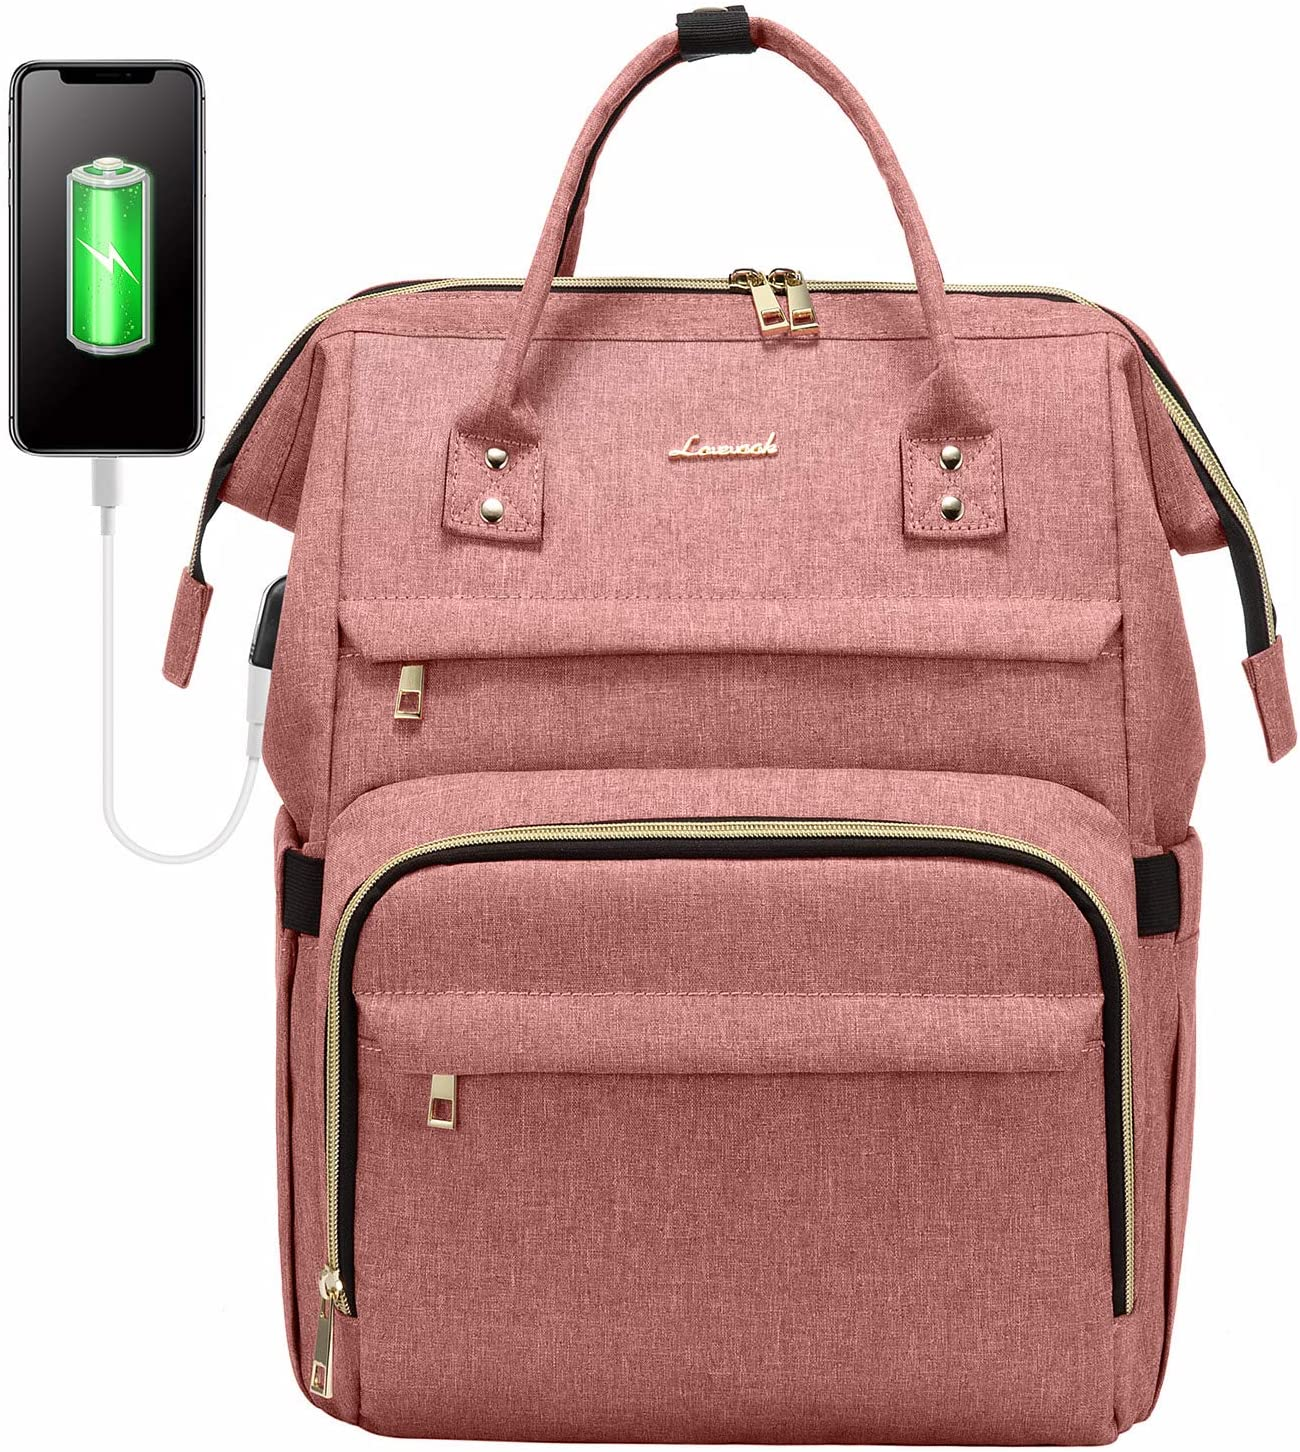 Laptop Backpack for Women Fashion Travel Bags Business Computer Purse Work Bag with USB Port, Light-Pink